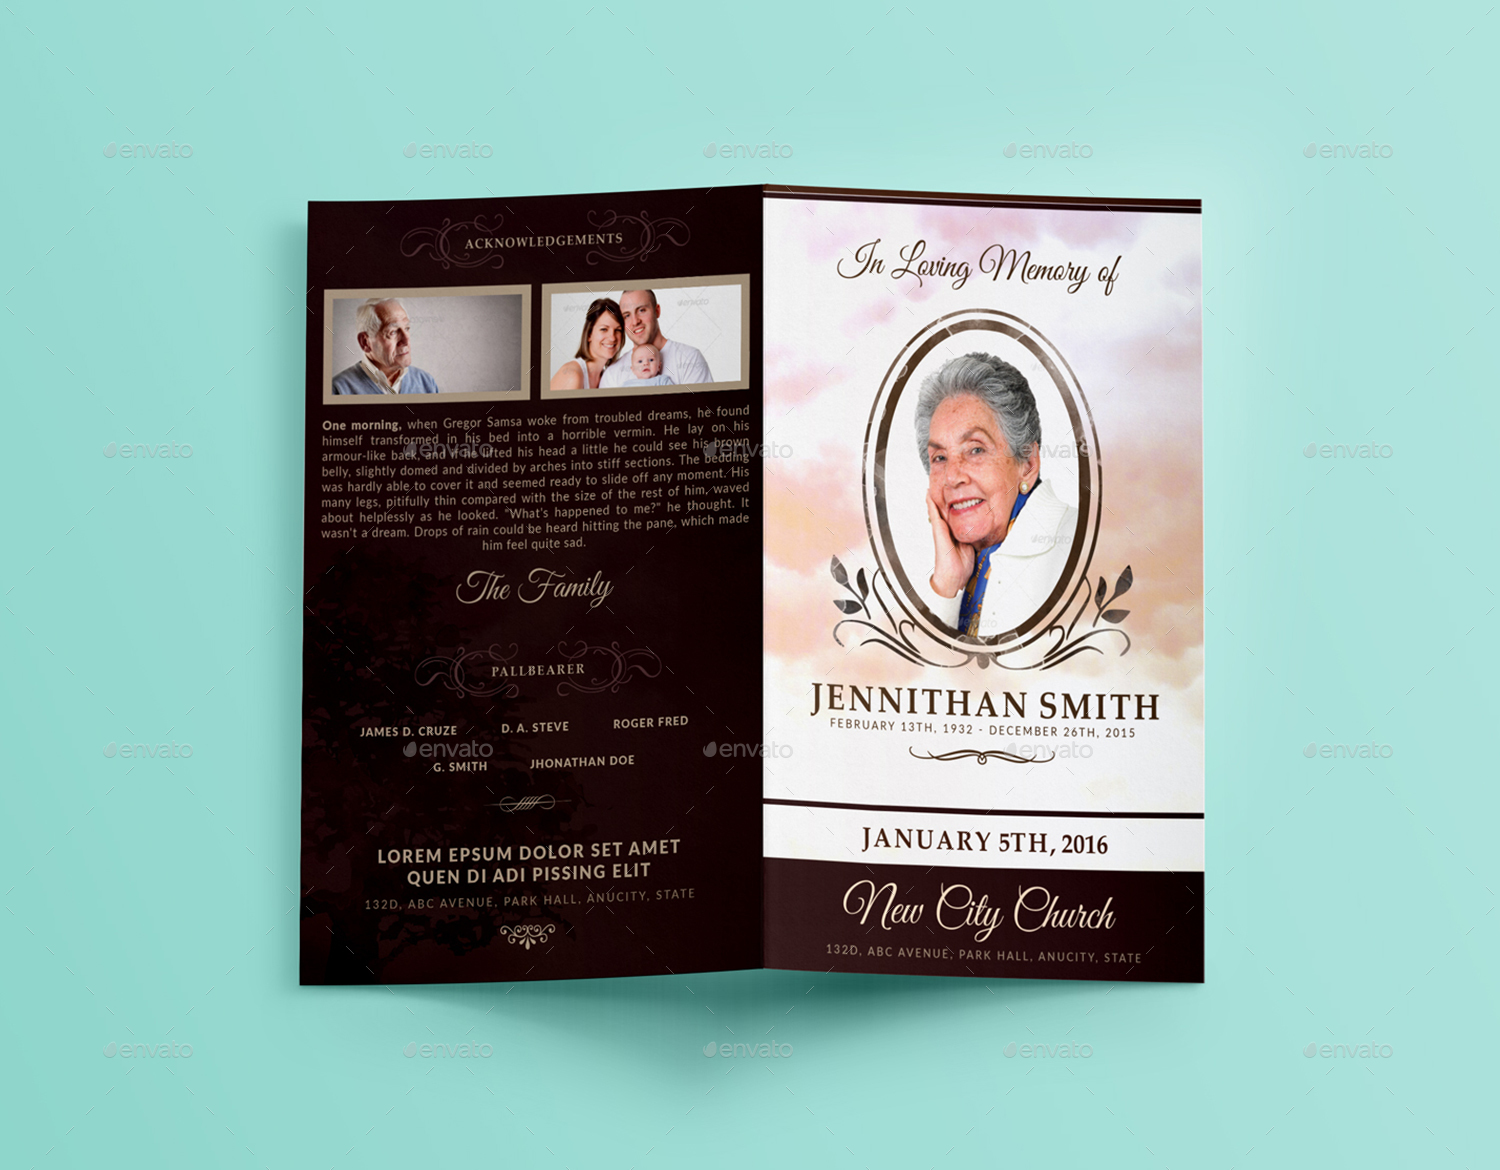 Loving Memory Funeral Program Brochure Template 01  Funeral Pamphlet Templates